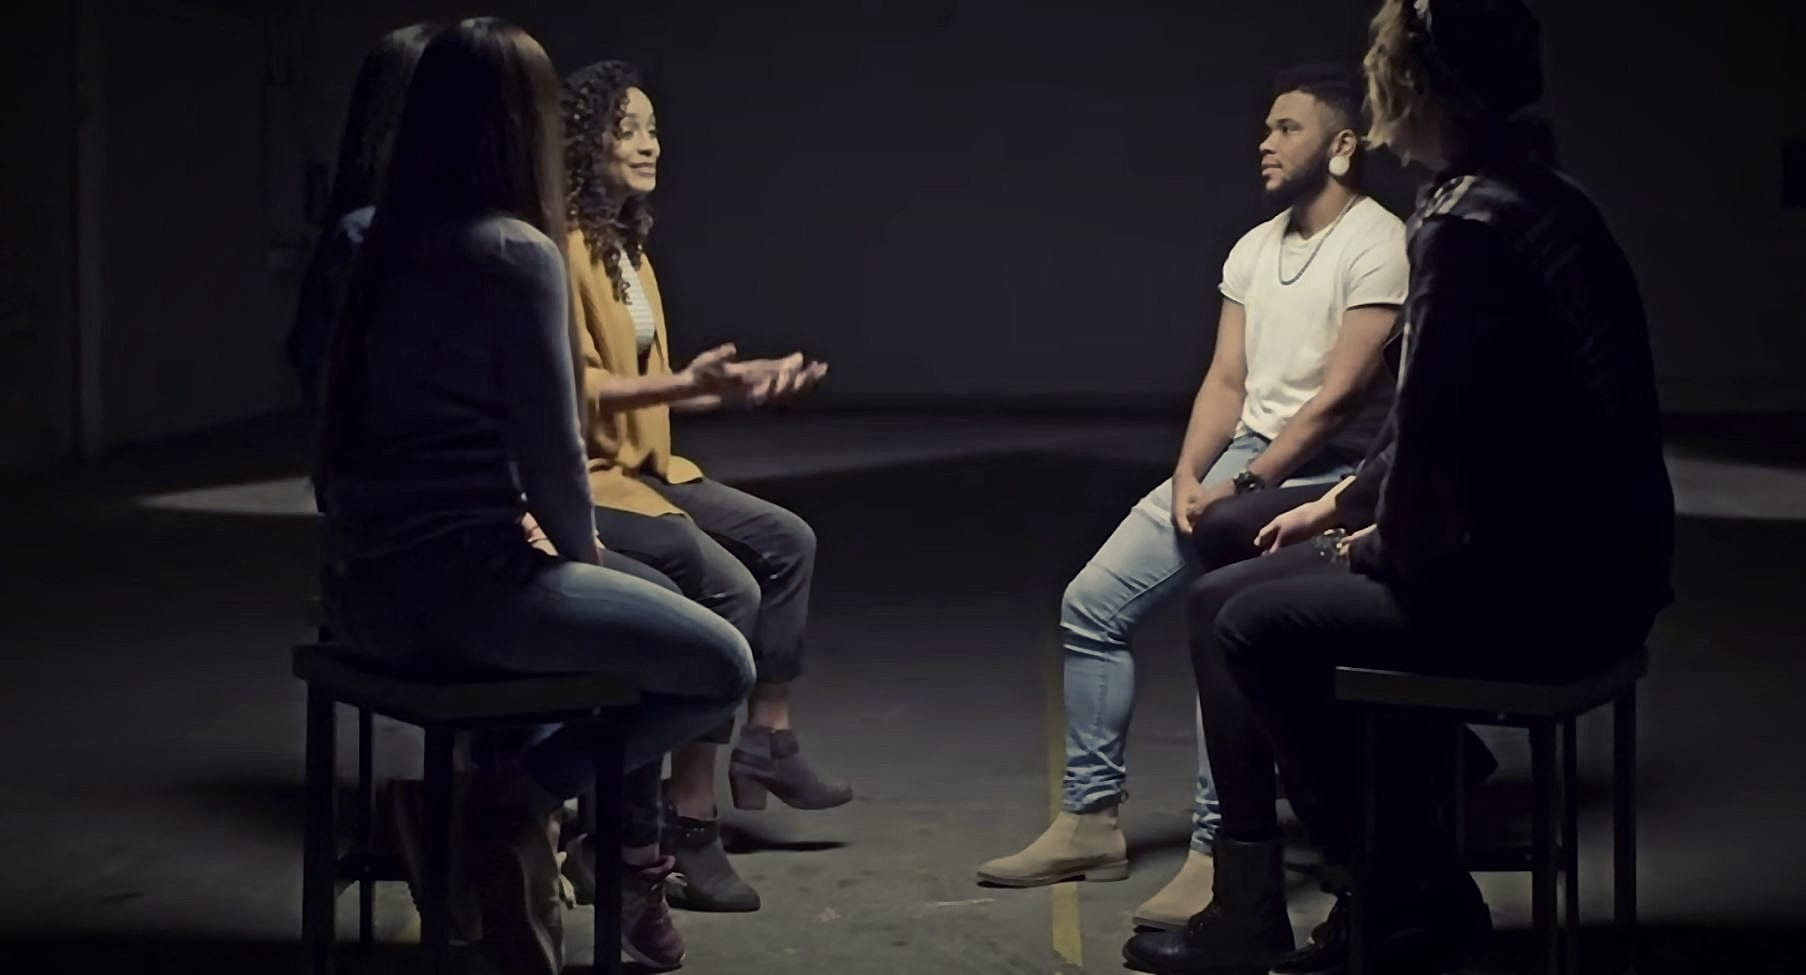 A group of people talking about a topic in Jubilee Media's Middle Ground Series.